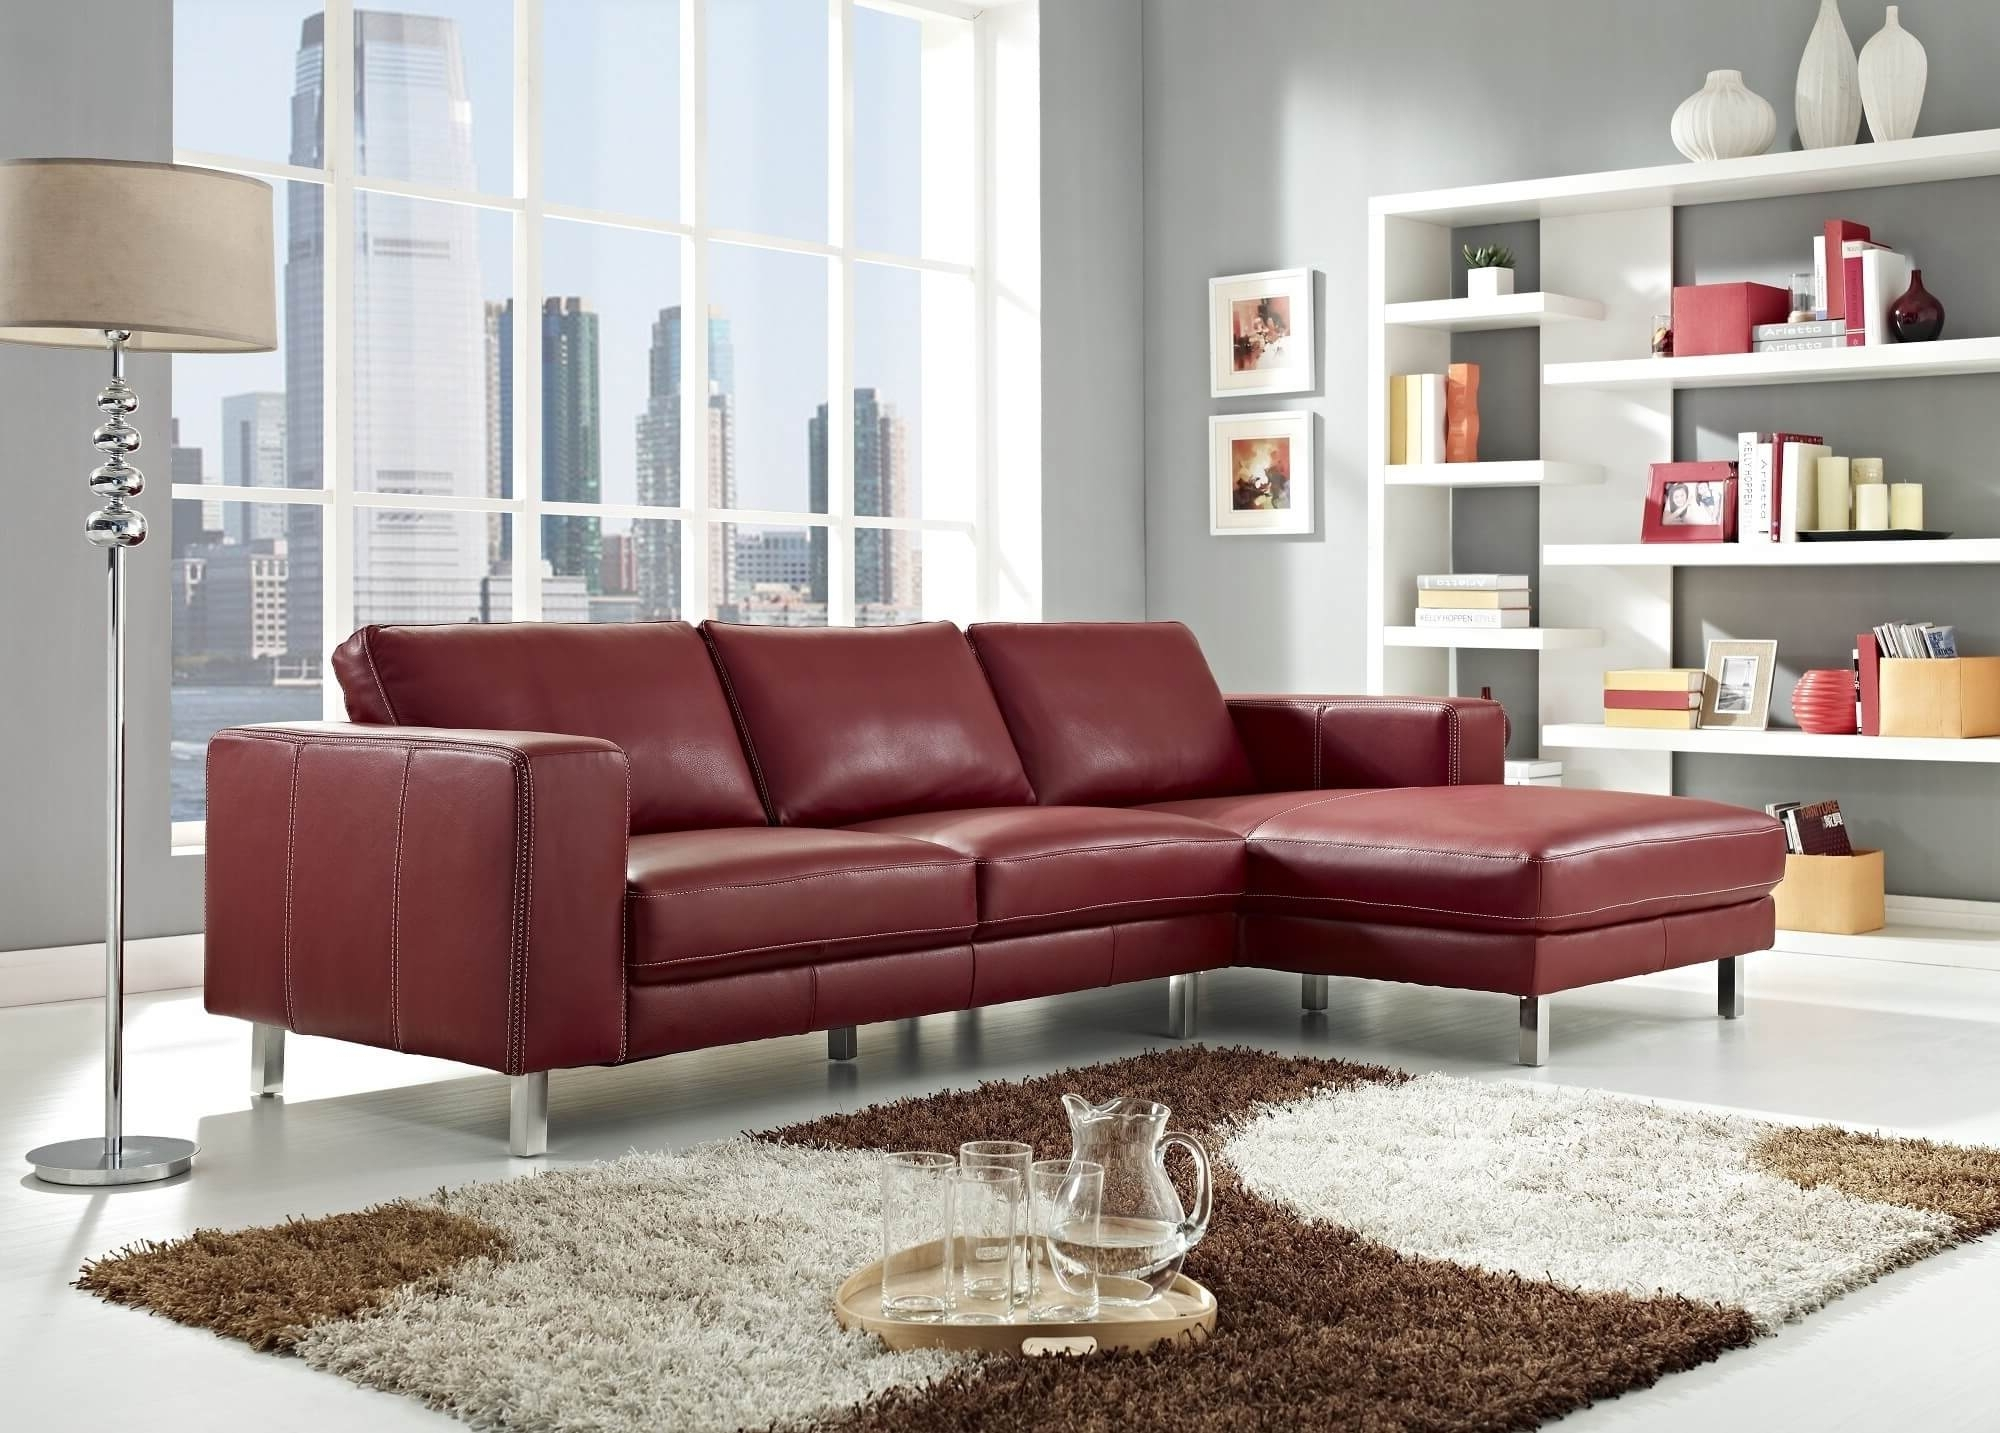 2018 Stylish Modern Red Sectional Sofas With Regard To Red Leather Sectionals With Chaise (View 2 of 15)